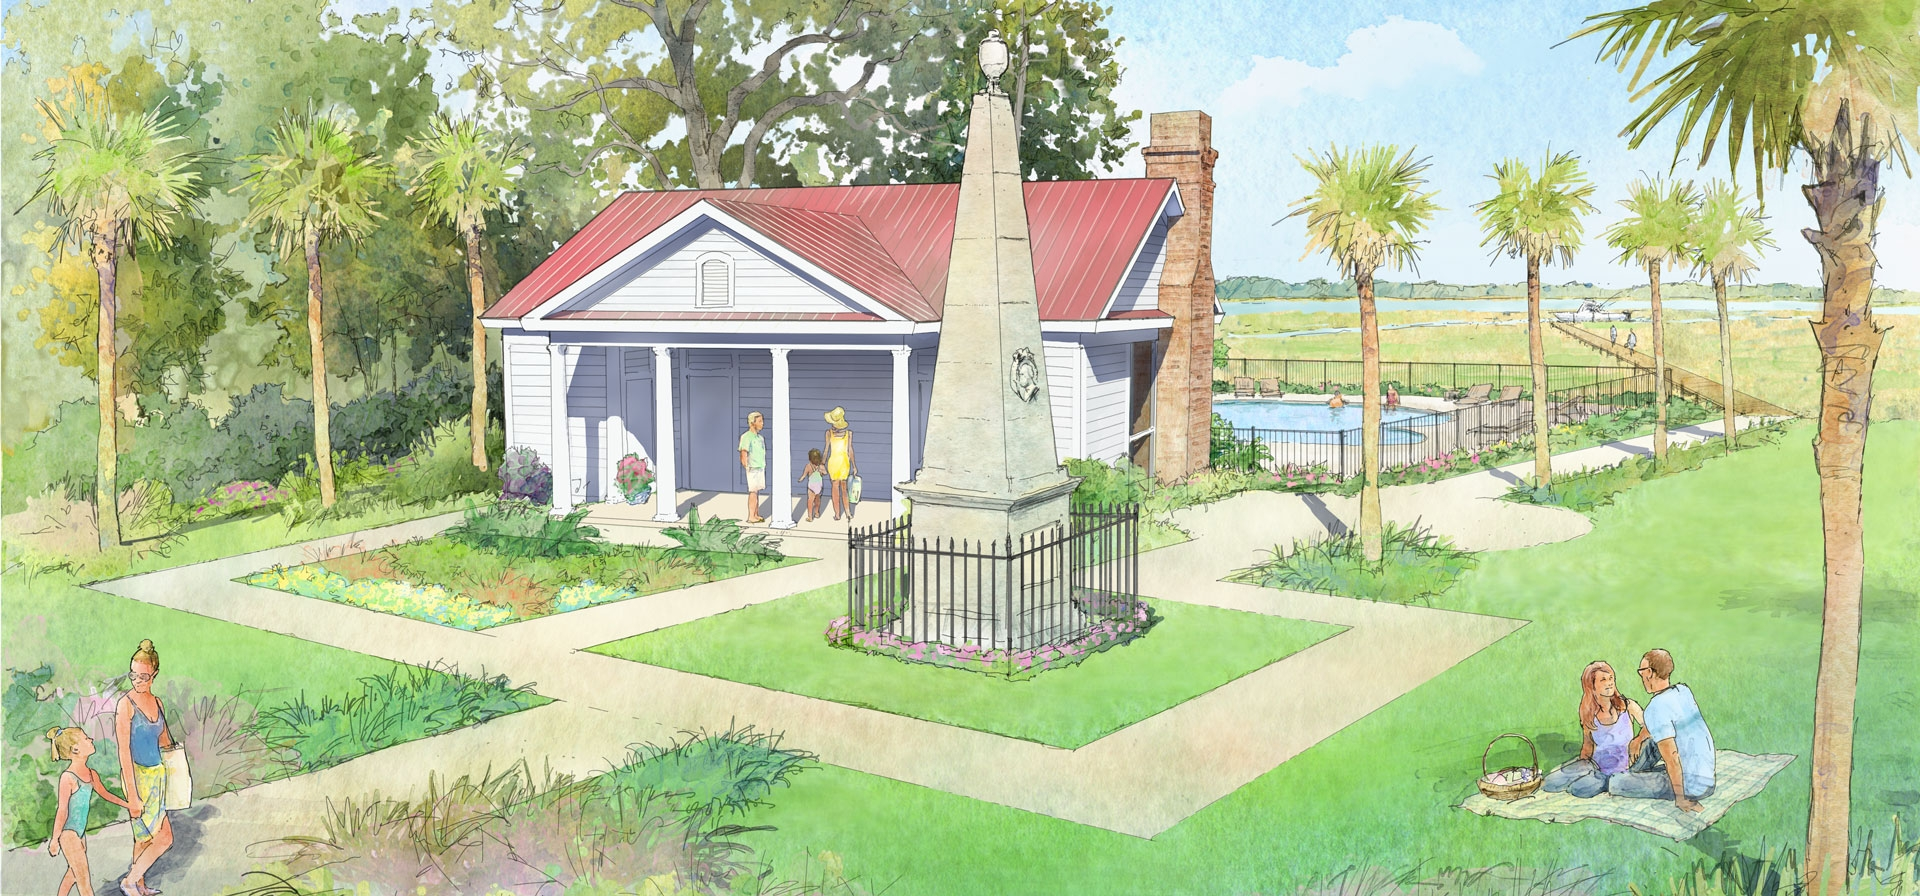 Ash_Hall_Monument_House_For_Web-7333.jpg